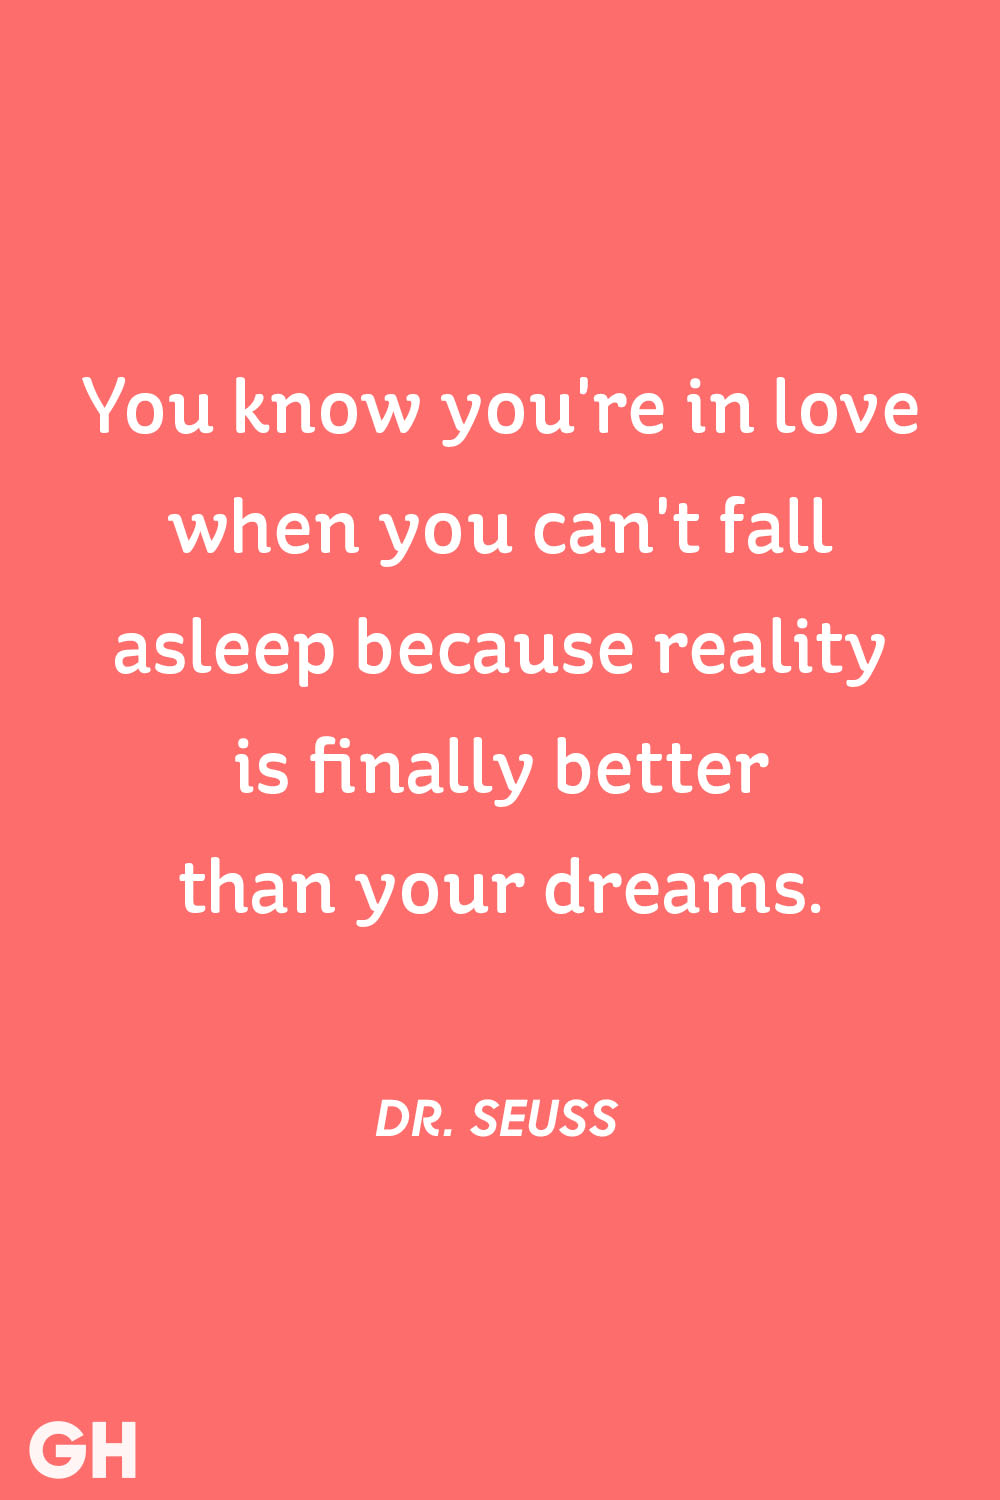 Dr Seuss Love Quotes Awesome 30 Cute Valentine's Day Quotes  Best Romantic Quotes About